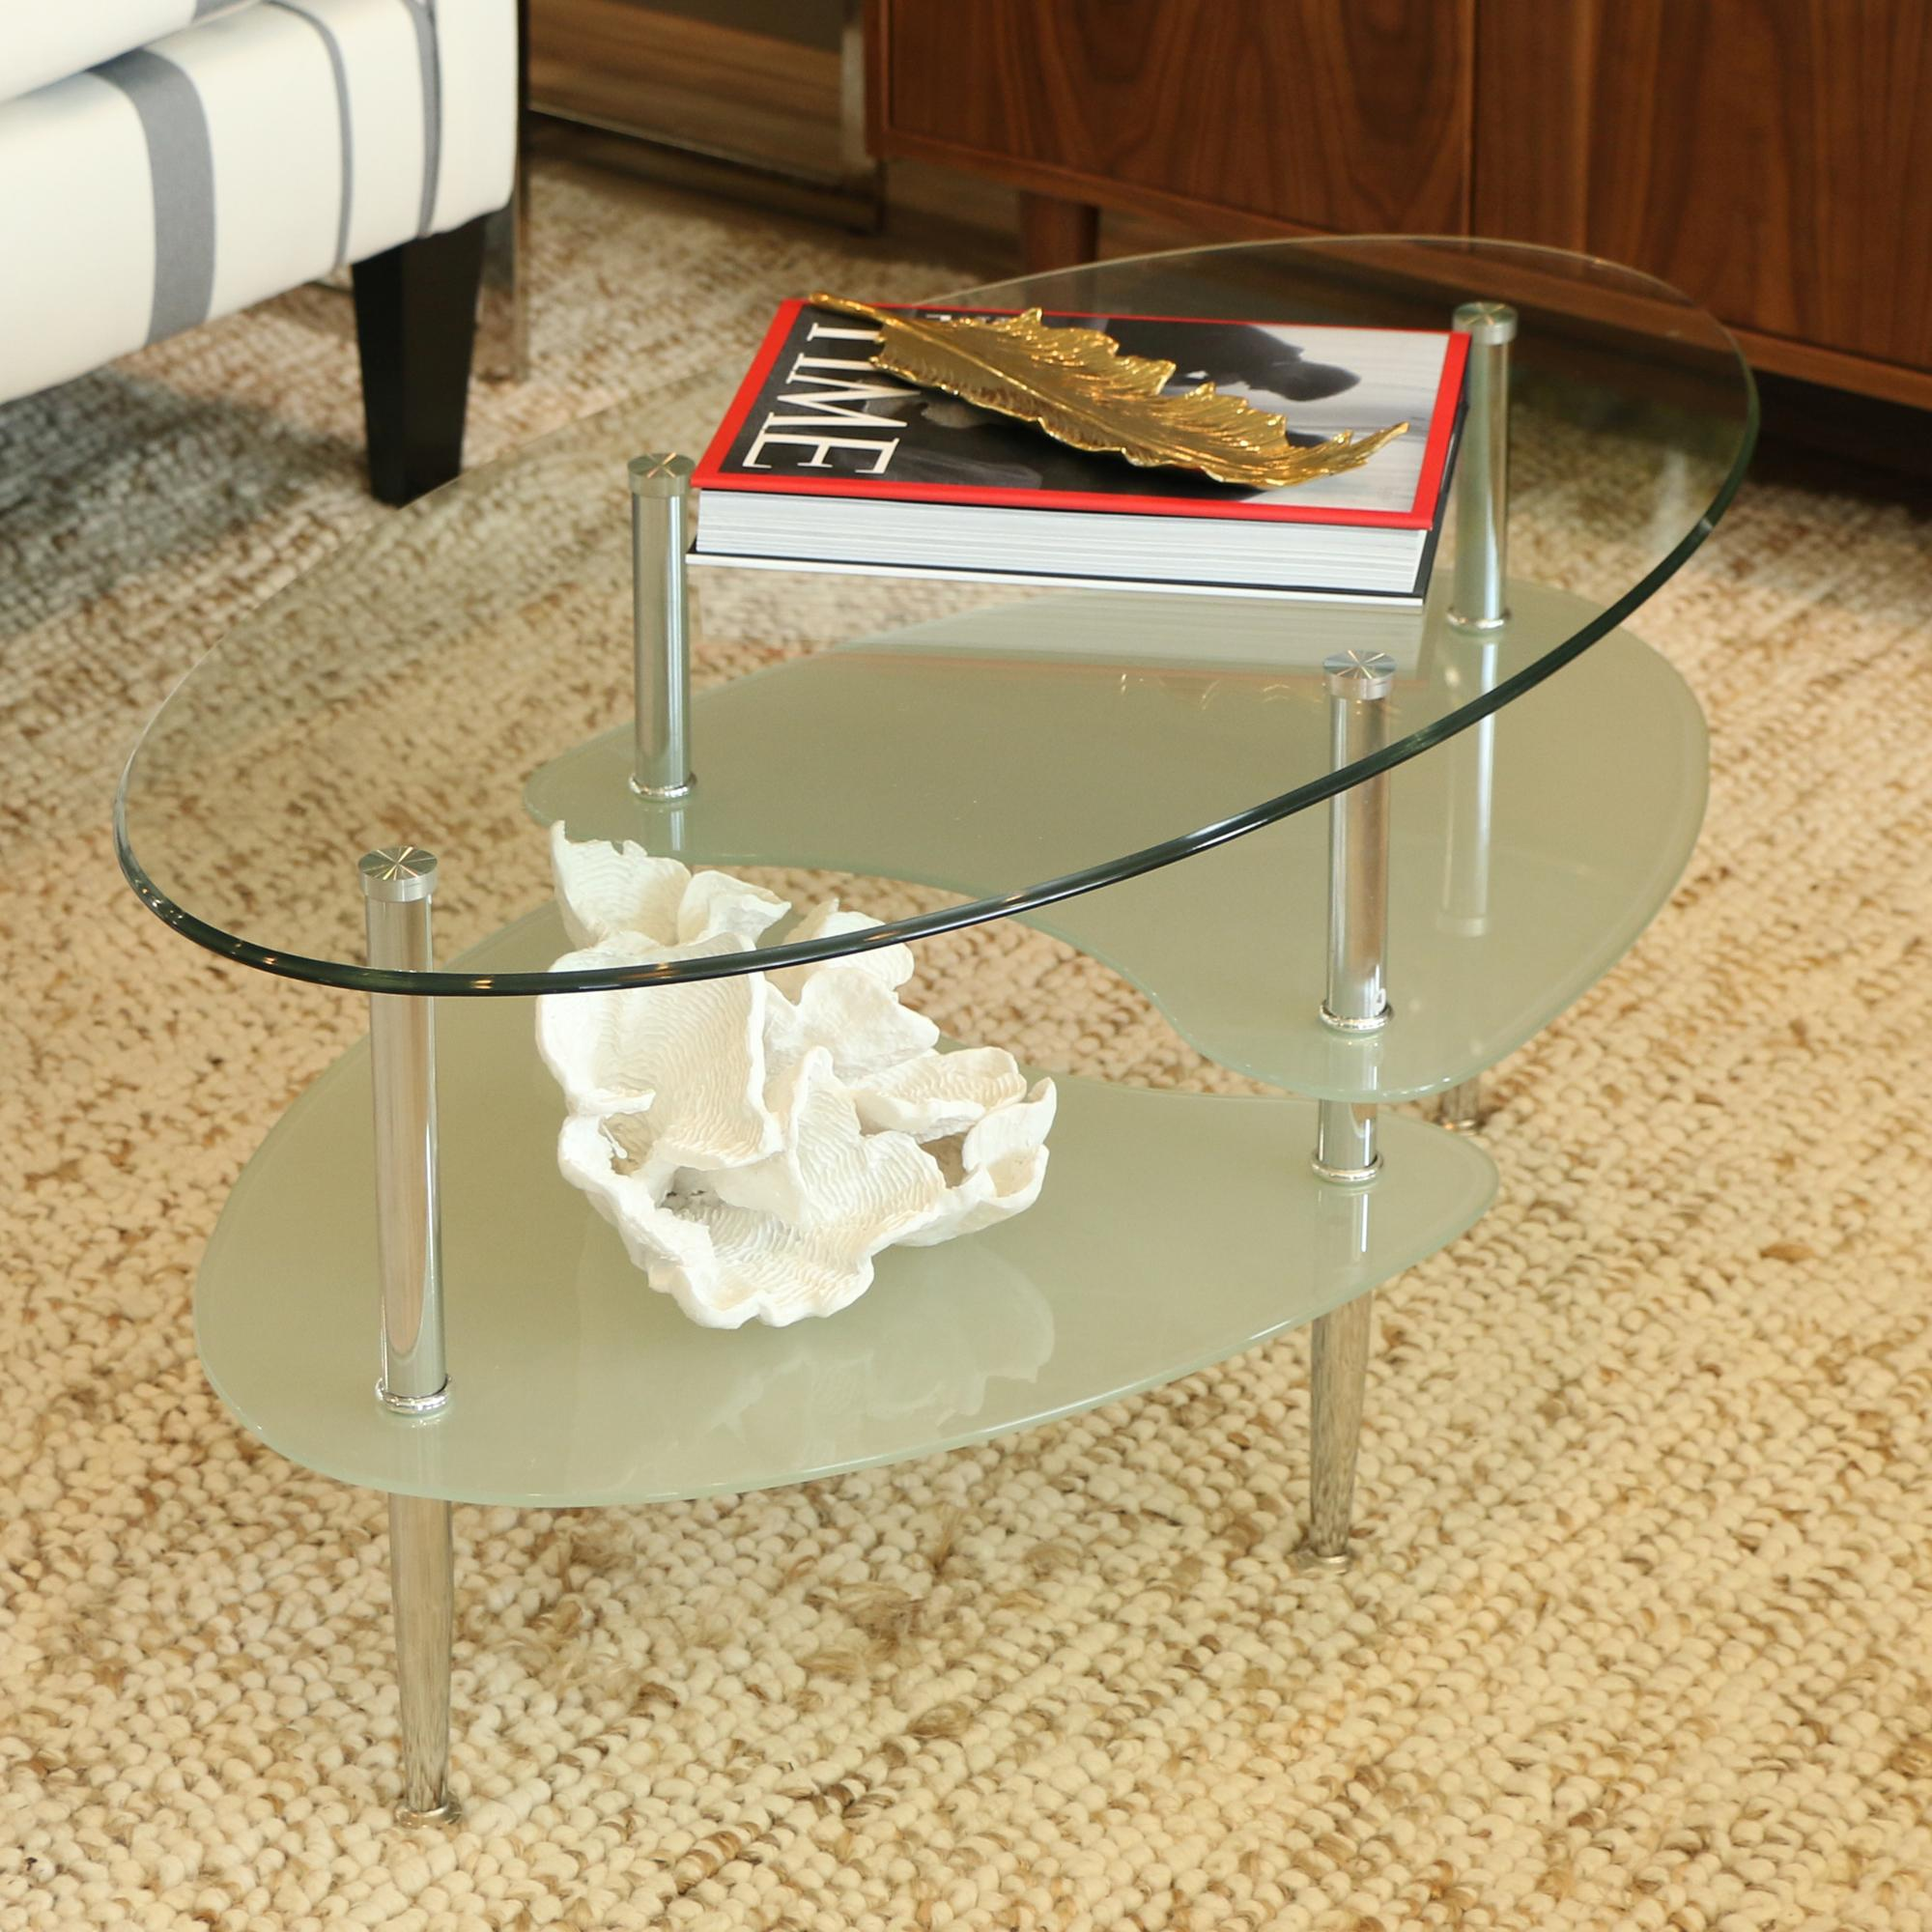 Amazon.com: Walker Edison Glass Oval Coffee Table: Kitchen